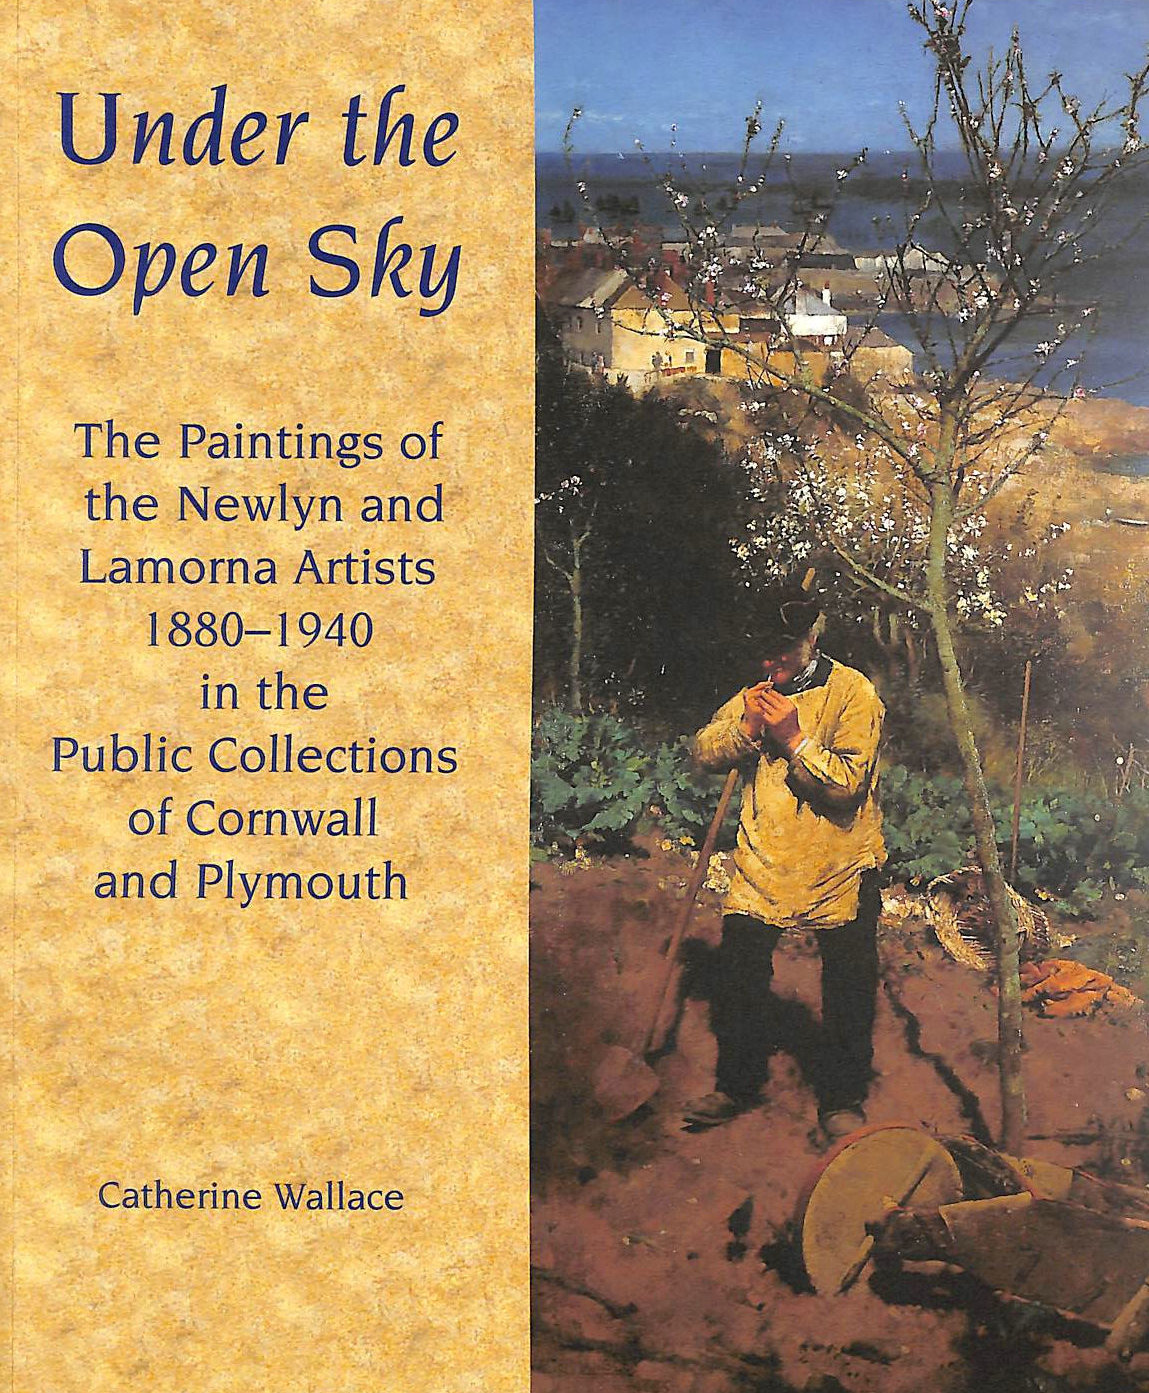 Image for Under the Open Sky: The Paintings of the Newlyn and Lamorna Artists 1880-1940 in the Public Collections of Cornwall and Plymouth